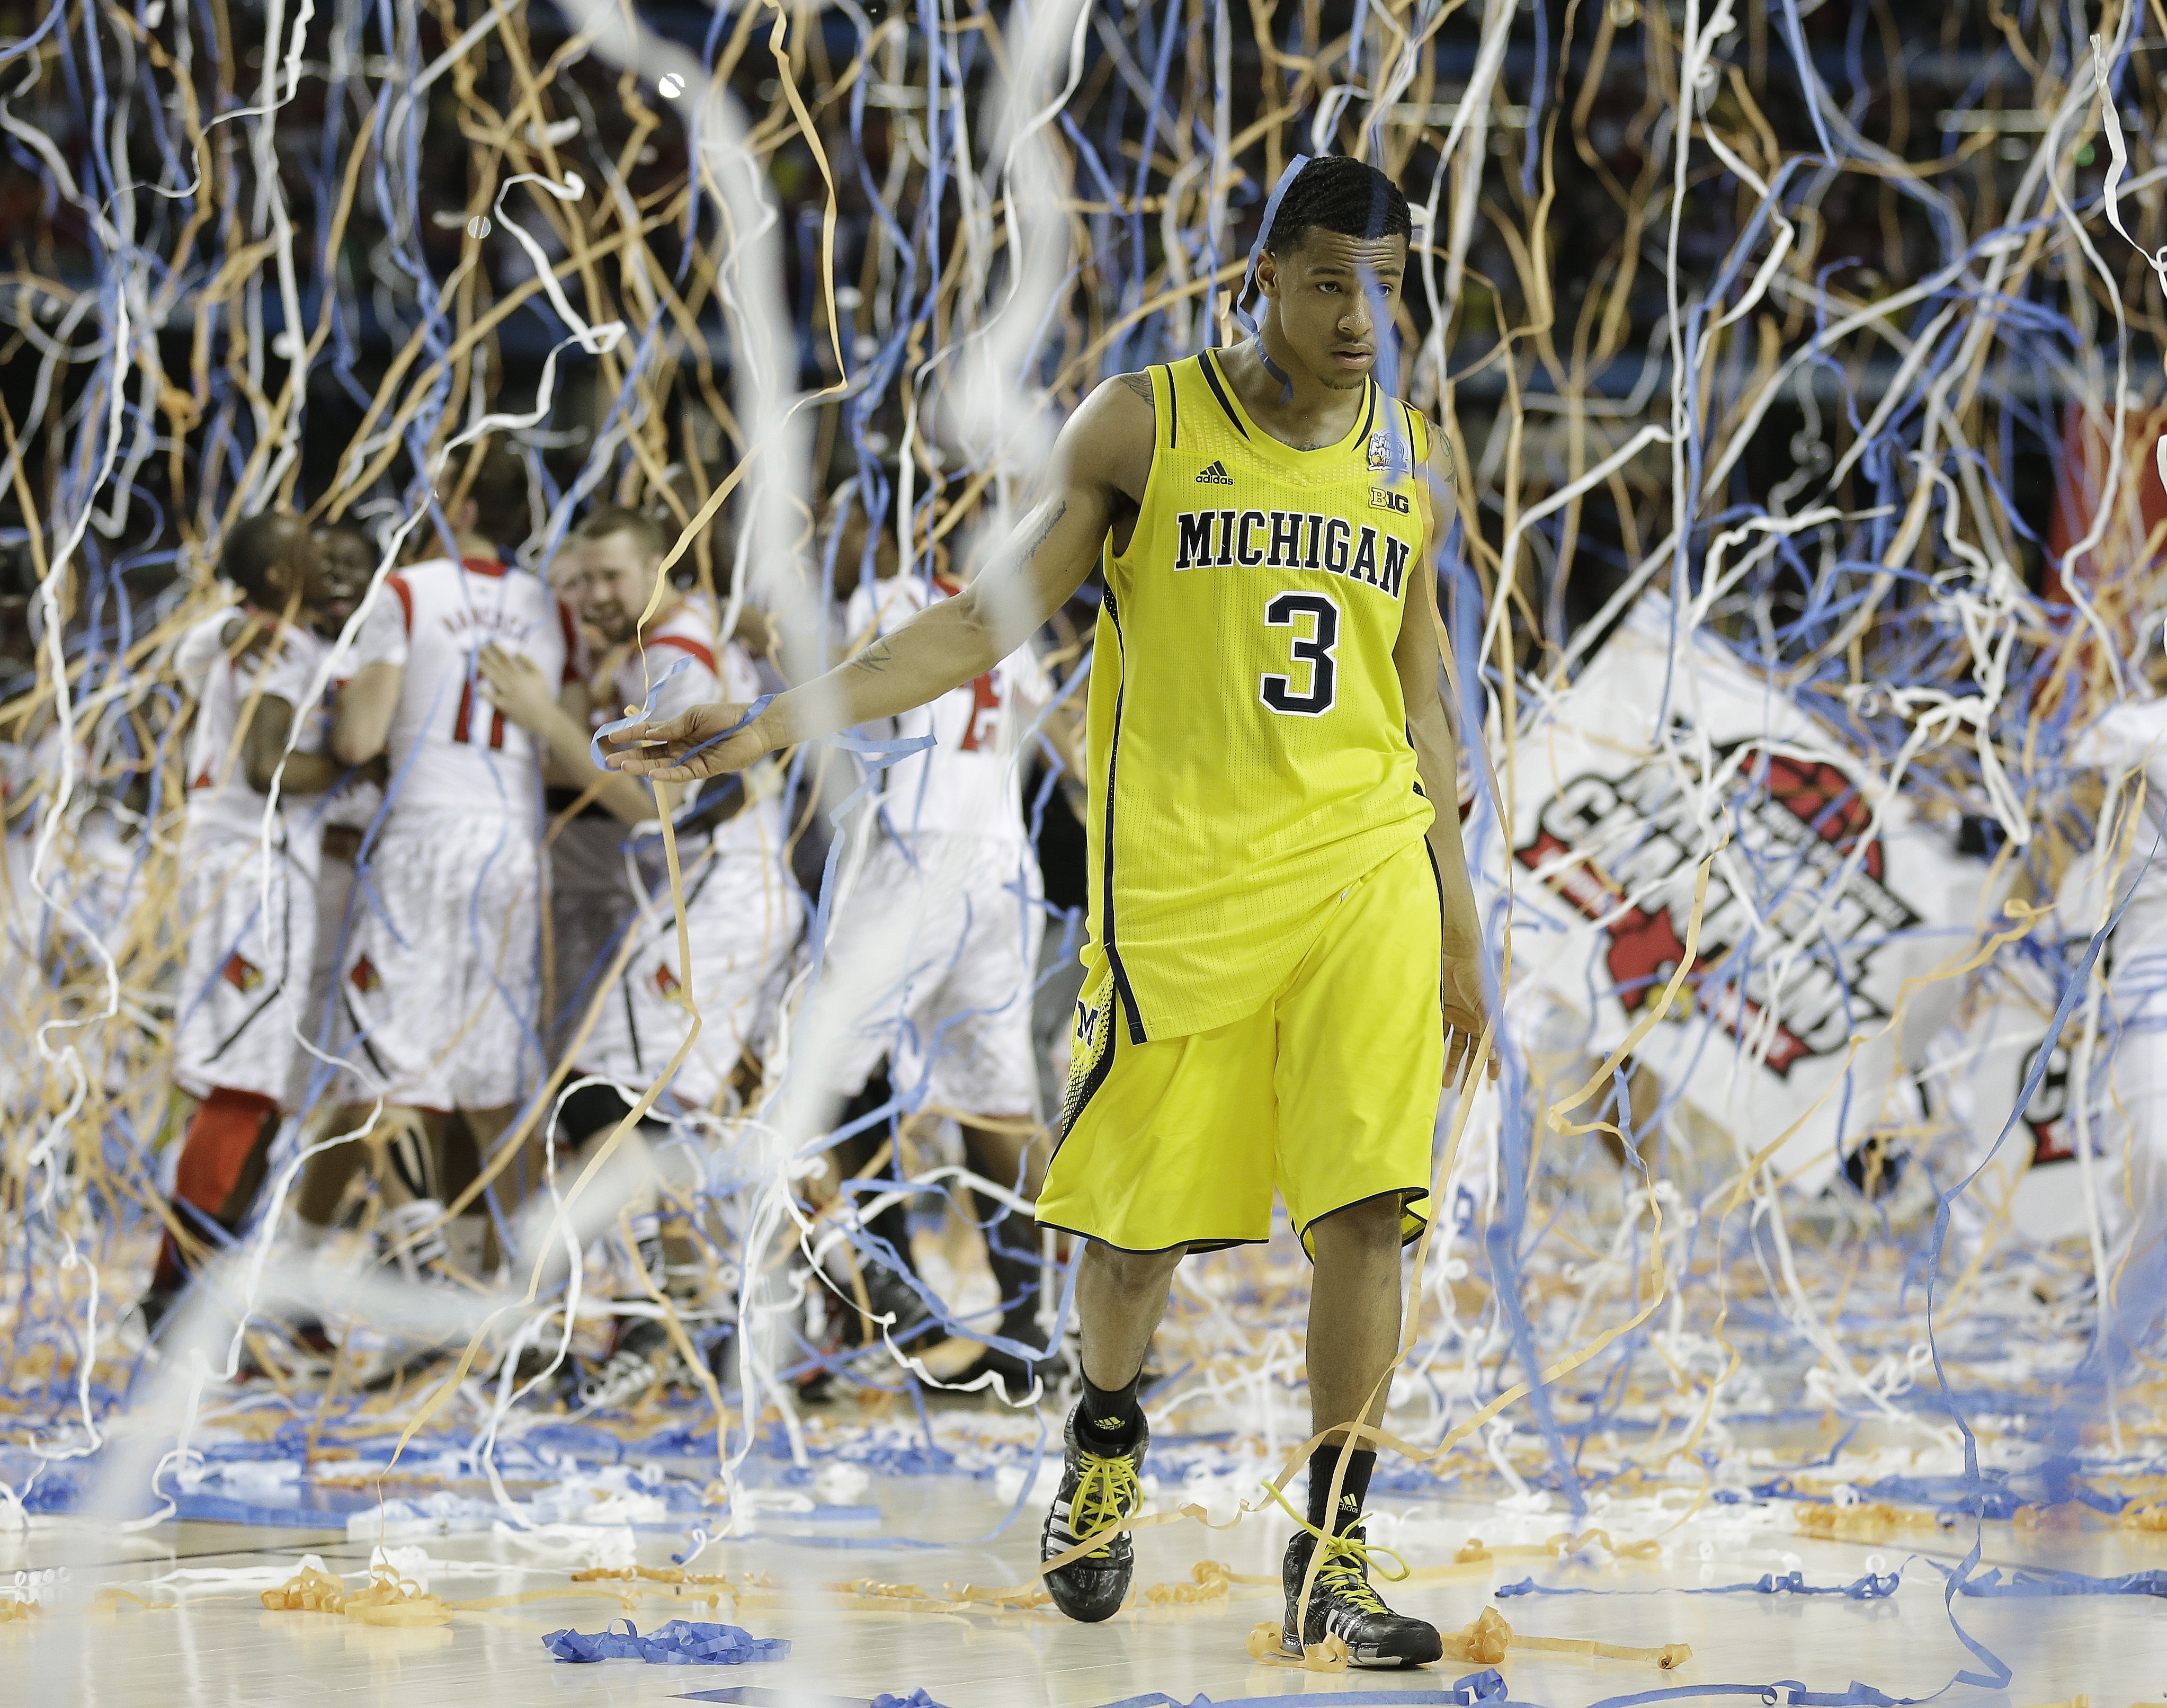 Sure, why not, Michigan hoops should claim 2013 title ...